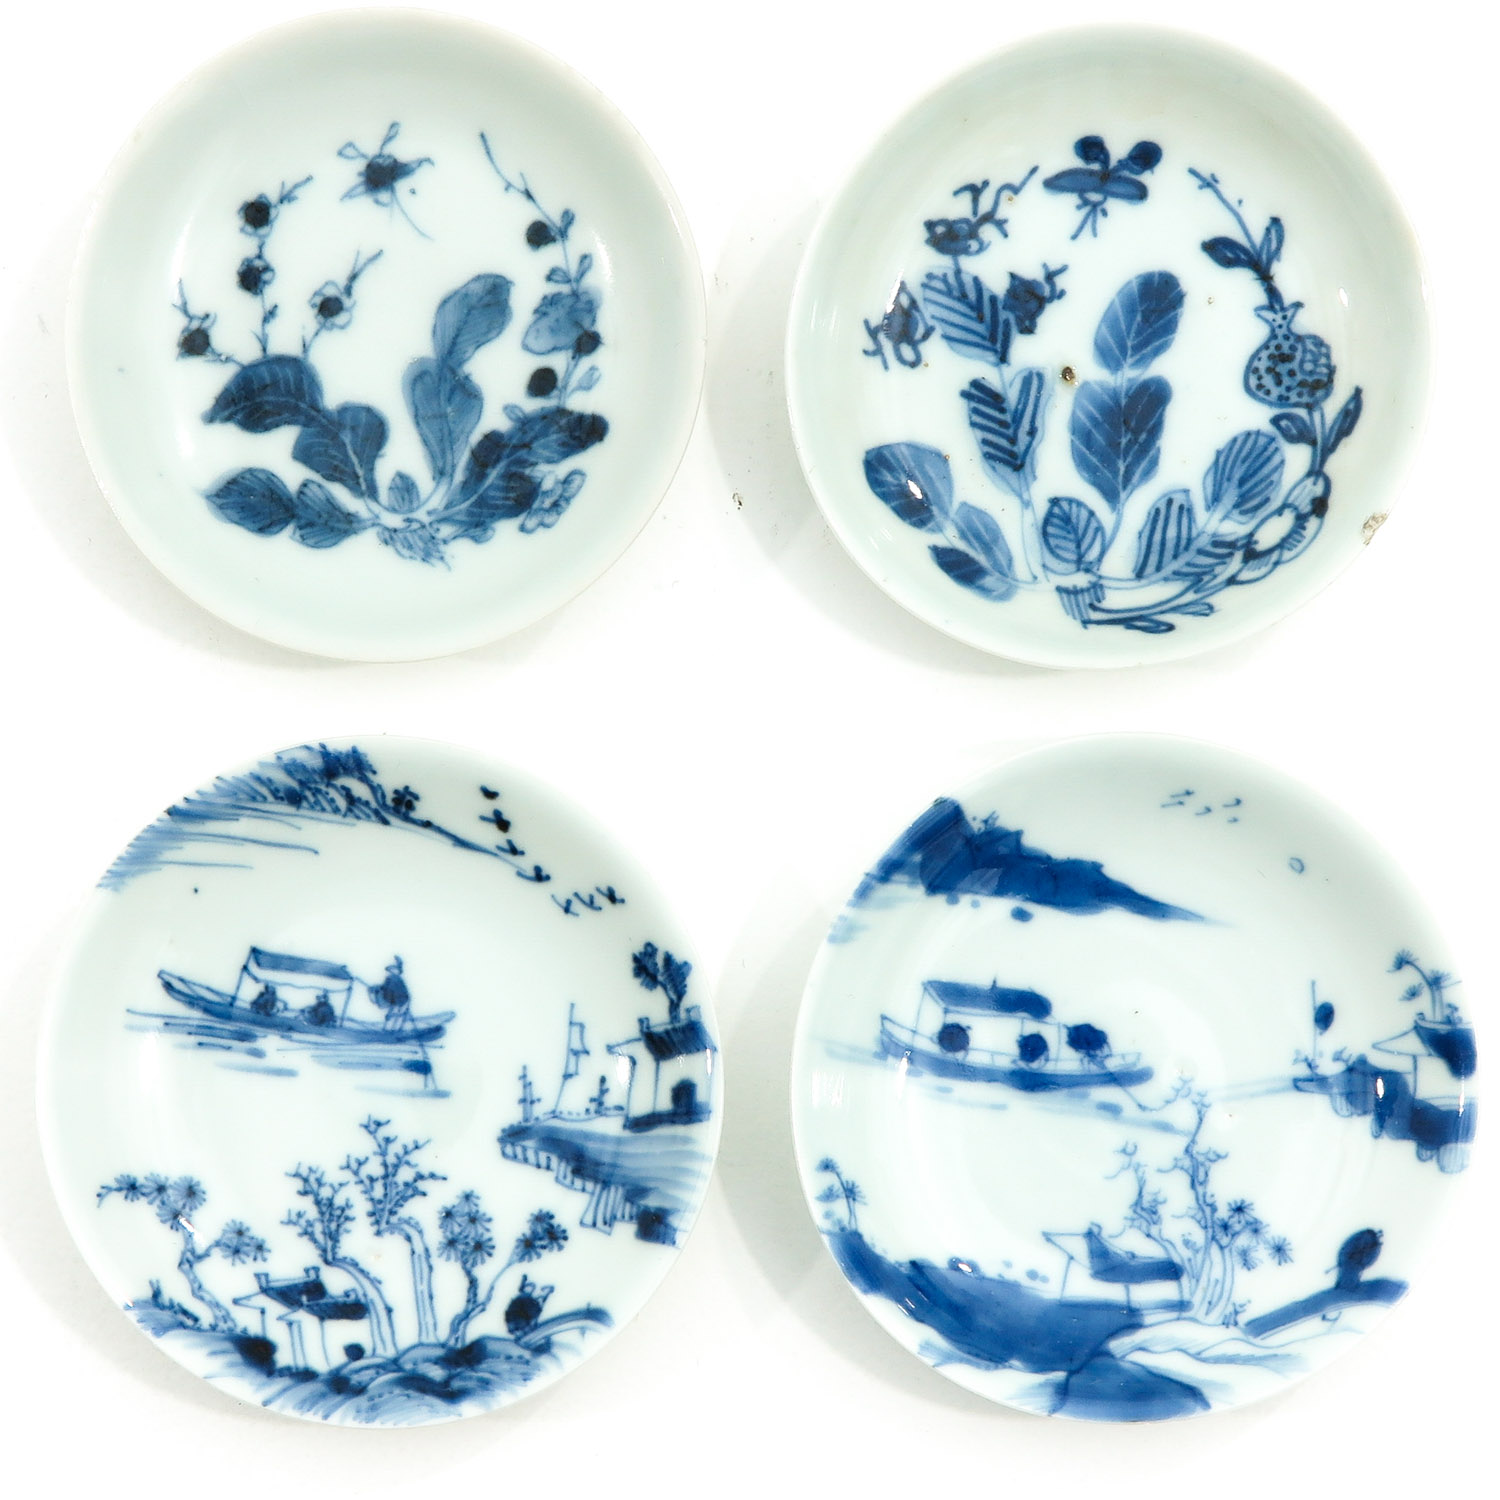 A Collection of 11 Small Plates - Image 7 of 10